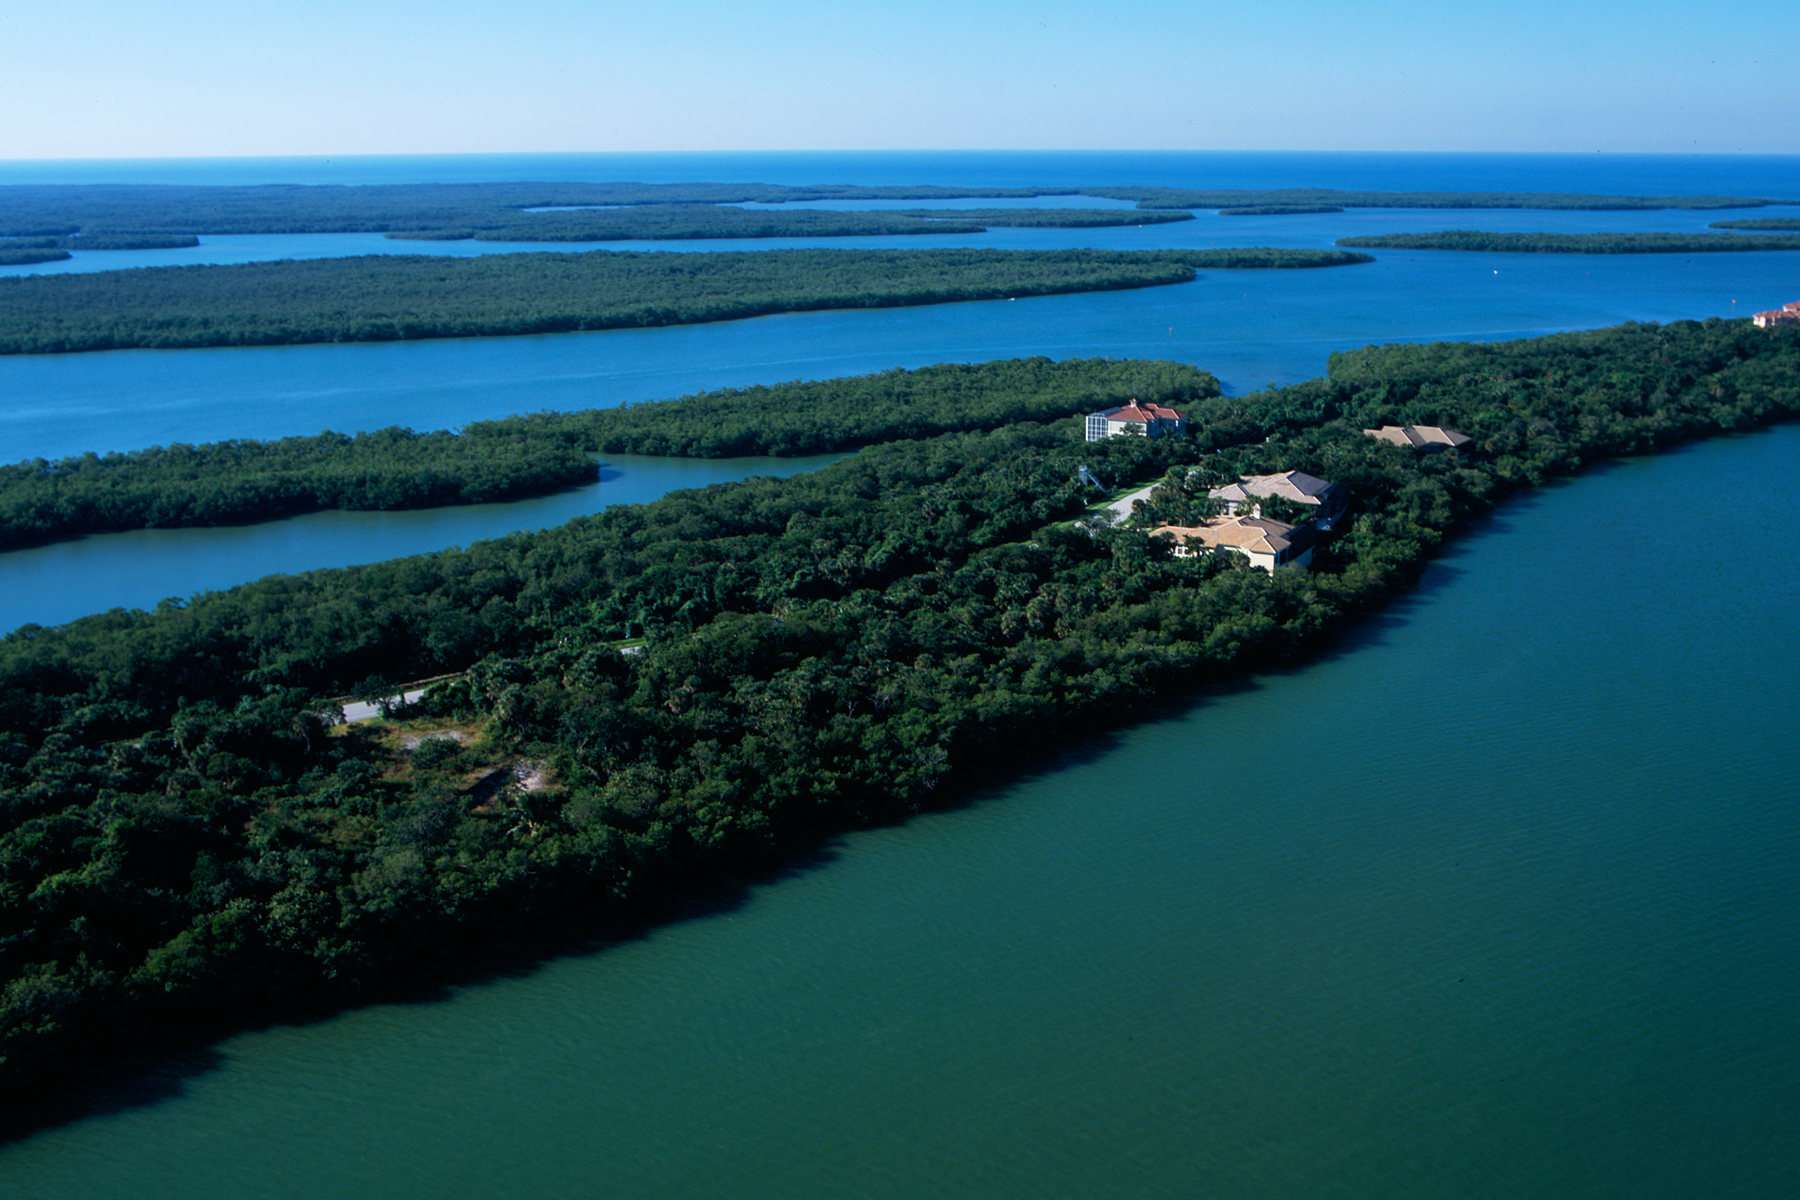 Land for Sale at MARCO ISLAND - HORR'S ISLAND 900 Whiskey Creek Dr Marco Island, Florida, 34145 United States